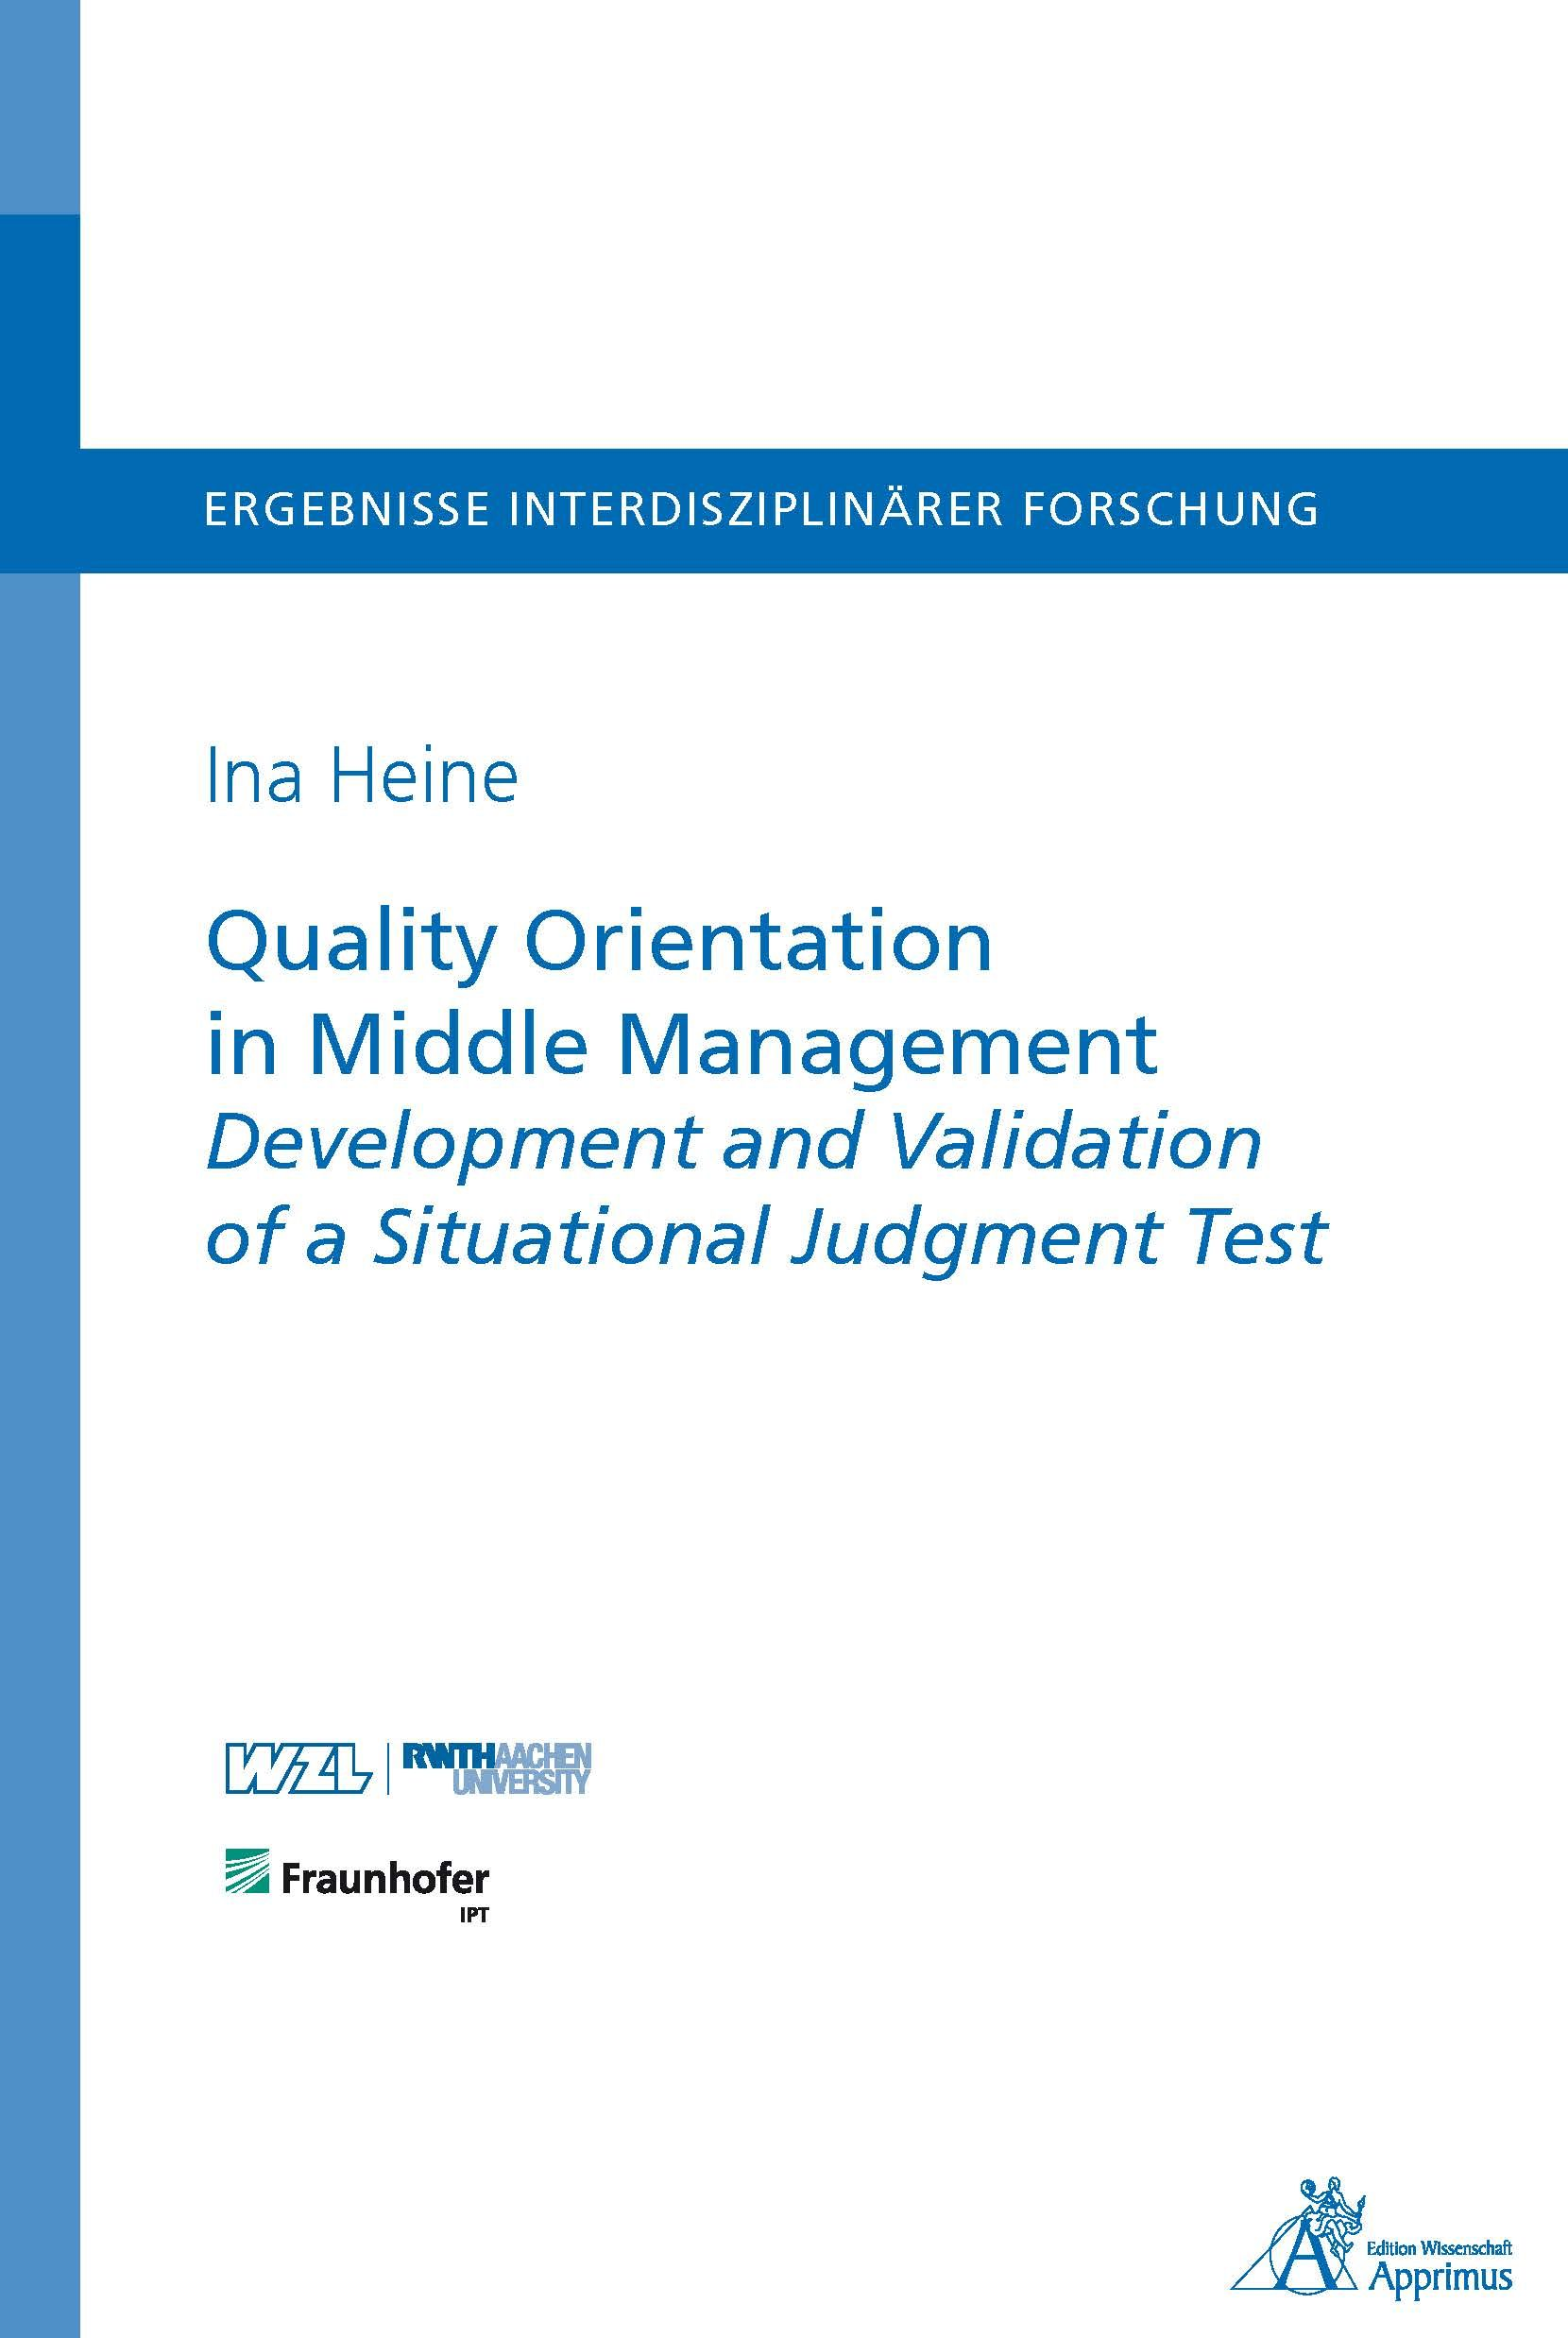 Quality Orientation in Middle Management Development and Validation of a Situational Judgment Test (E-Book)